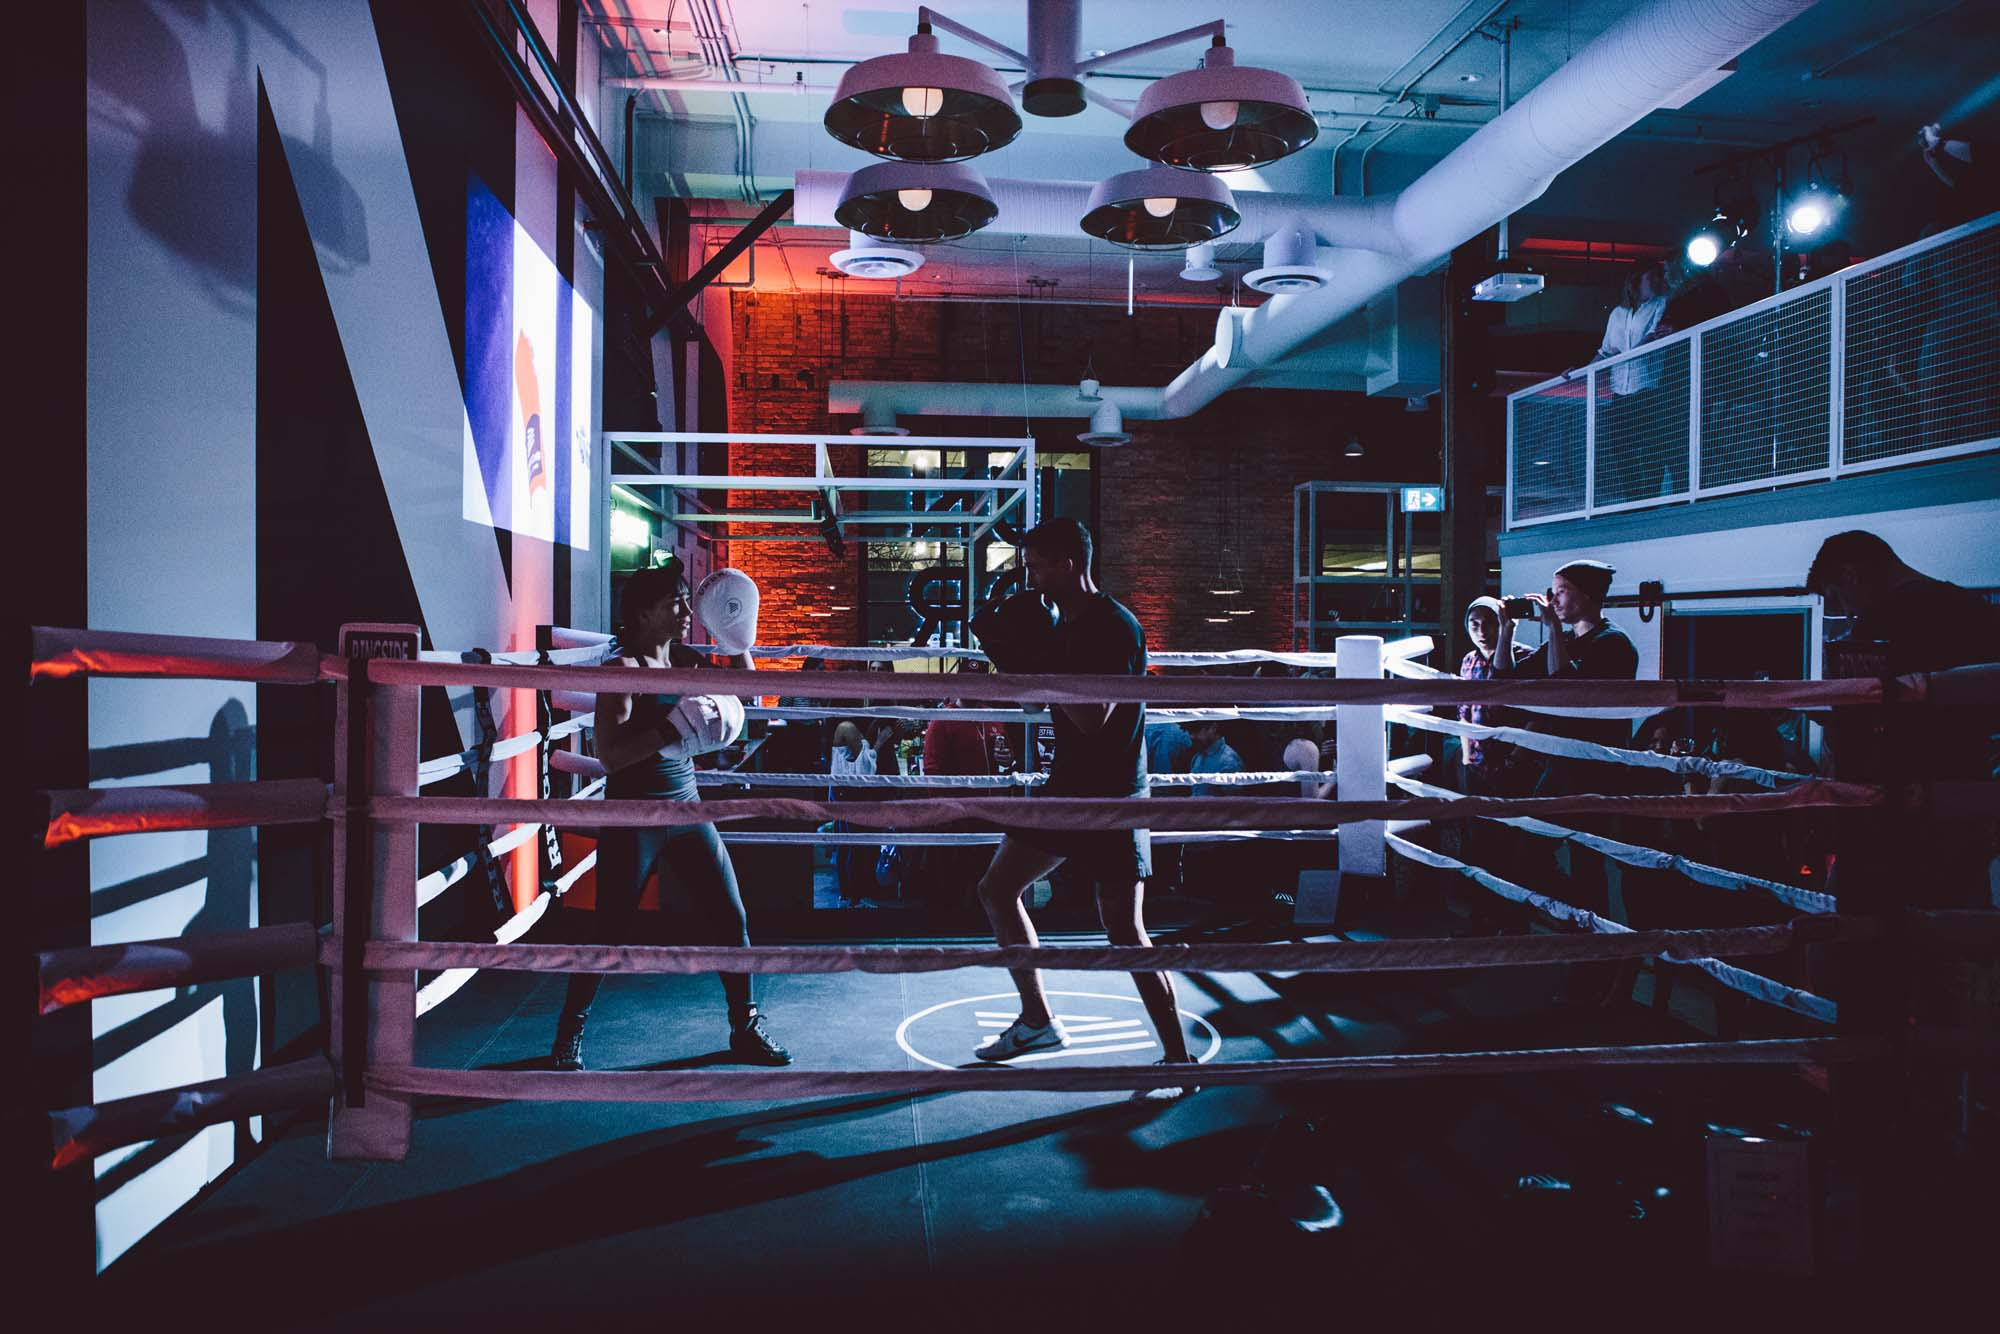 undrcard_boxing_studio_calgary_grand_opening_party20170120_0026.jpg